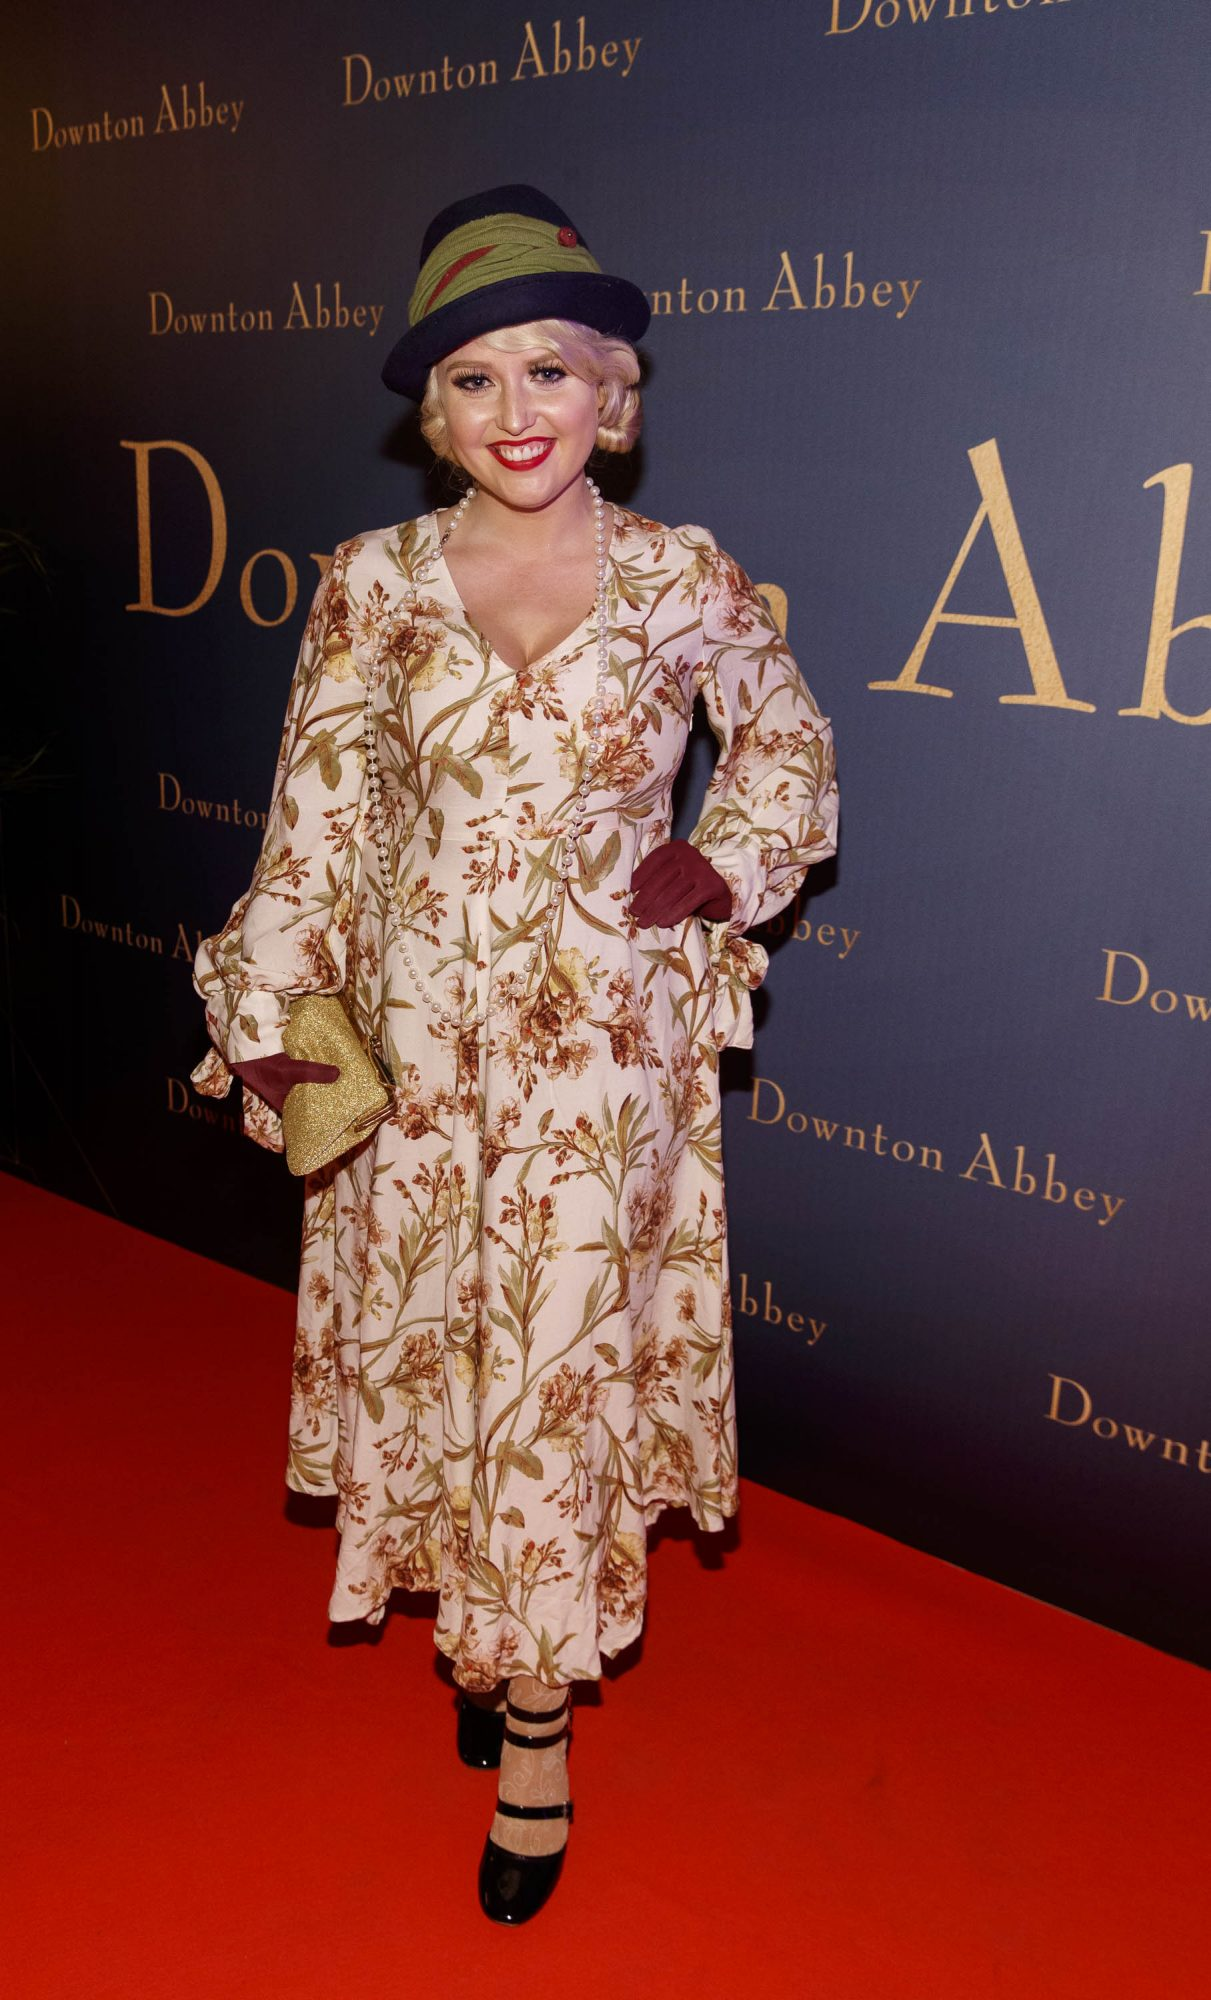 Laura Mullett pictured at the Universal Pictures Irish premiere screening of DOWNTON ABBEY at The Stella Theatre, Rathmines. Releasing in cinemas across Ireland from this Friday September 13th, starring the original cast, the worldwide phenomenon DOWNTON ABBEY, becomes a grand motion picture event. Picture Andres Poveda